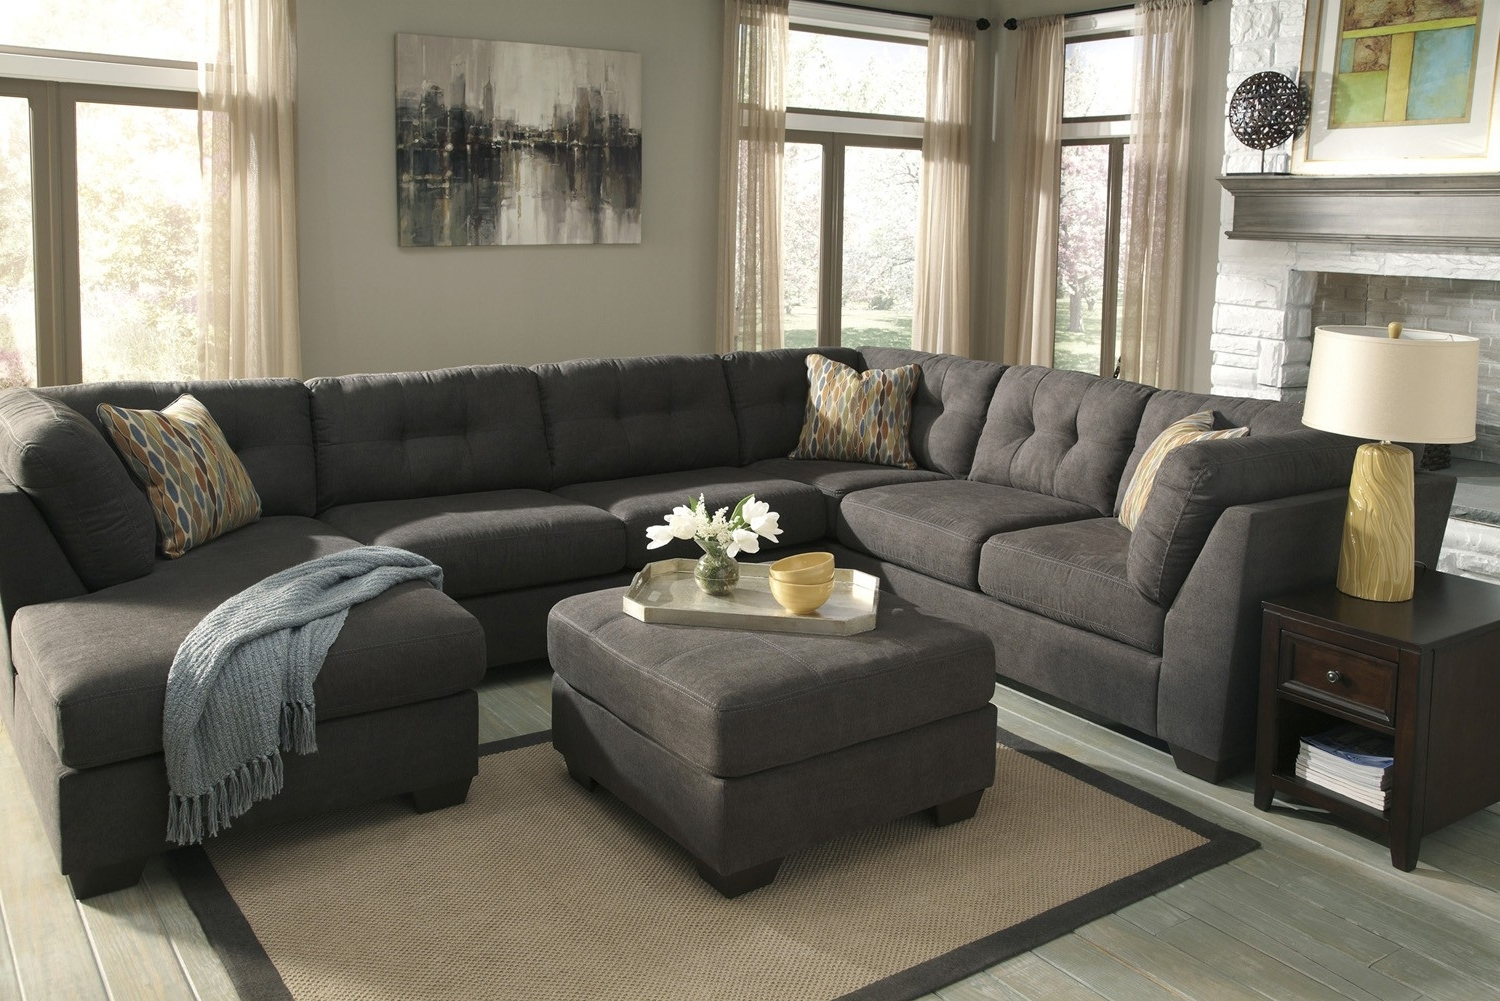 Latest Delta City Steel 3 Piece Sectional Sofa With Right Arm Facing For 3 Piece Sectional Sleeper Sofas (View 13 of 20)